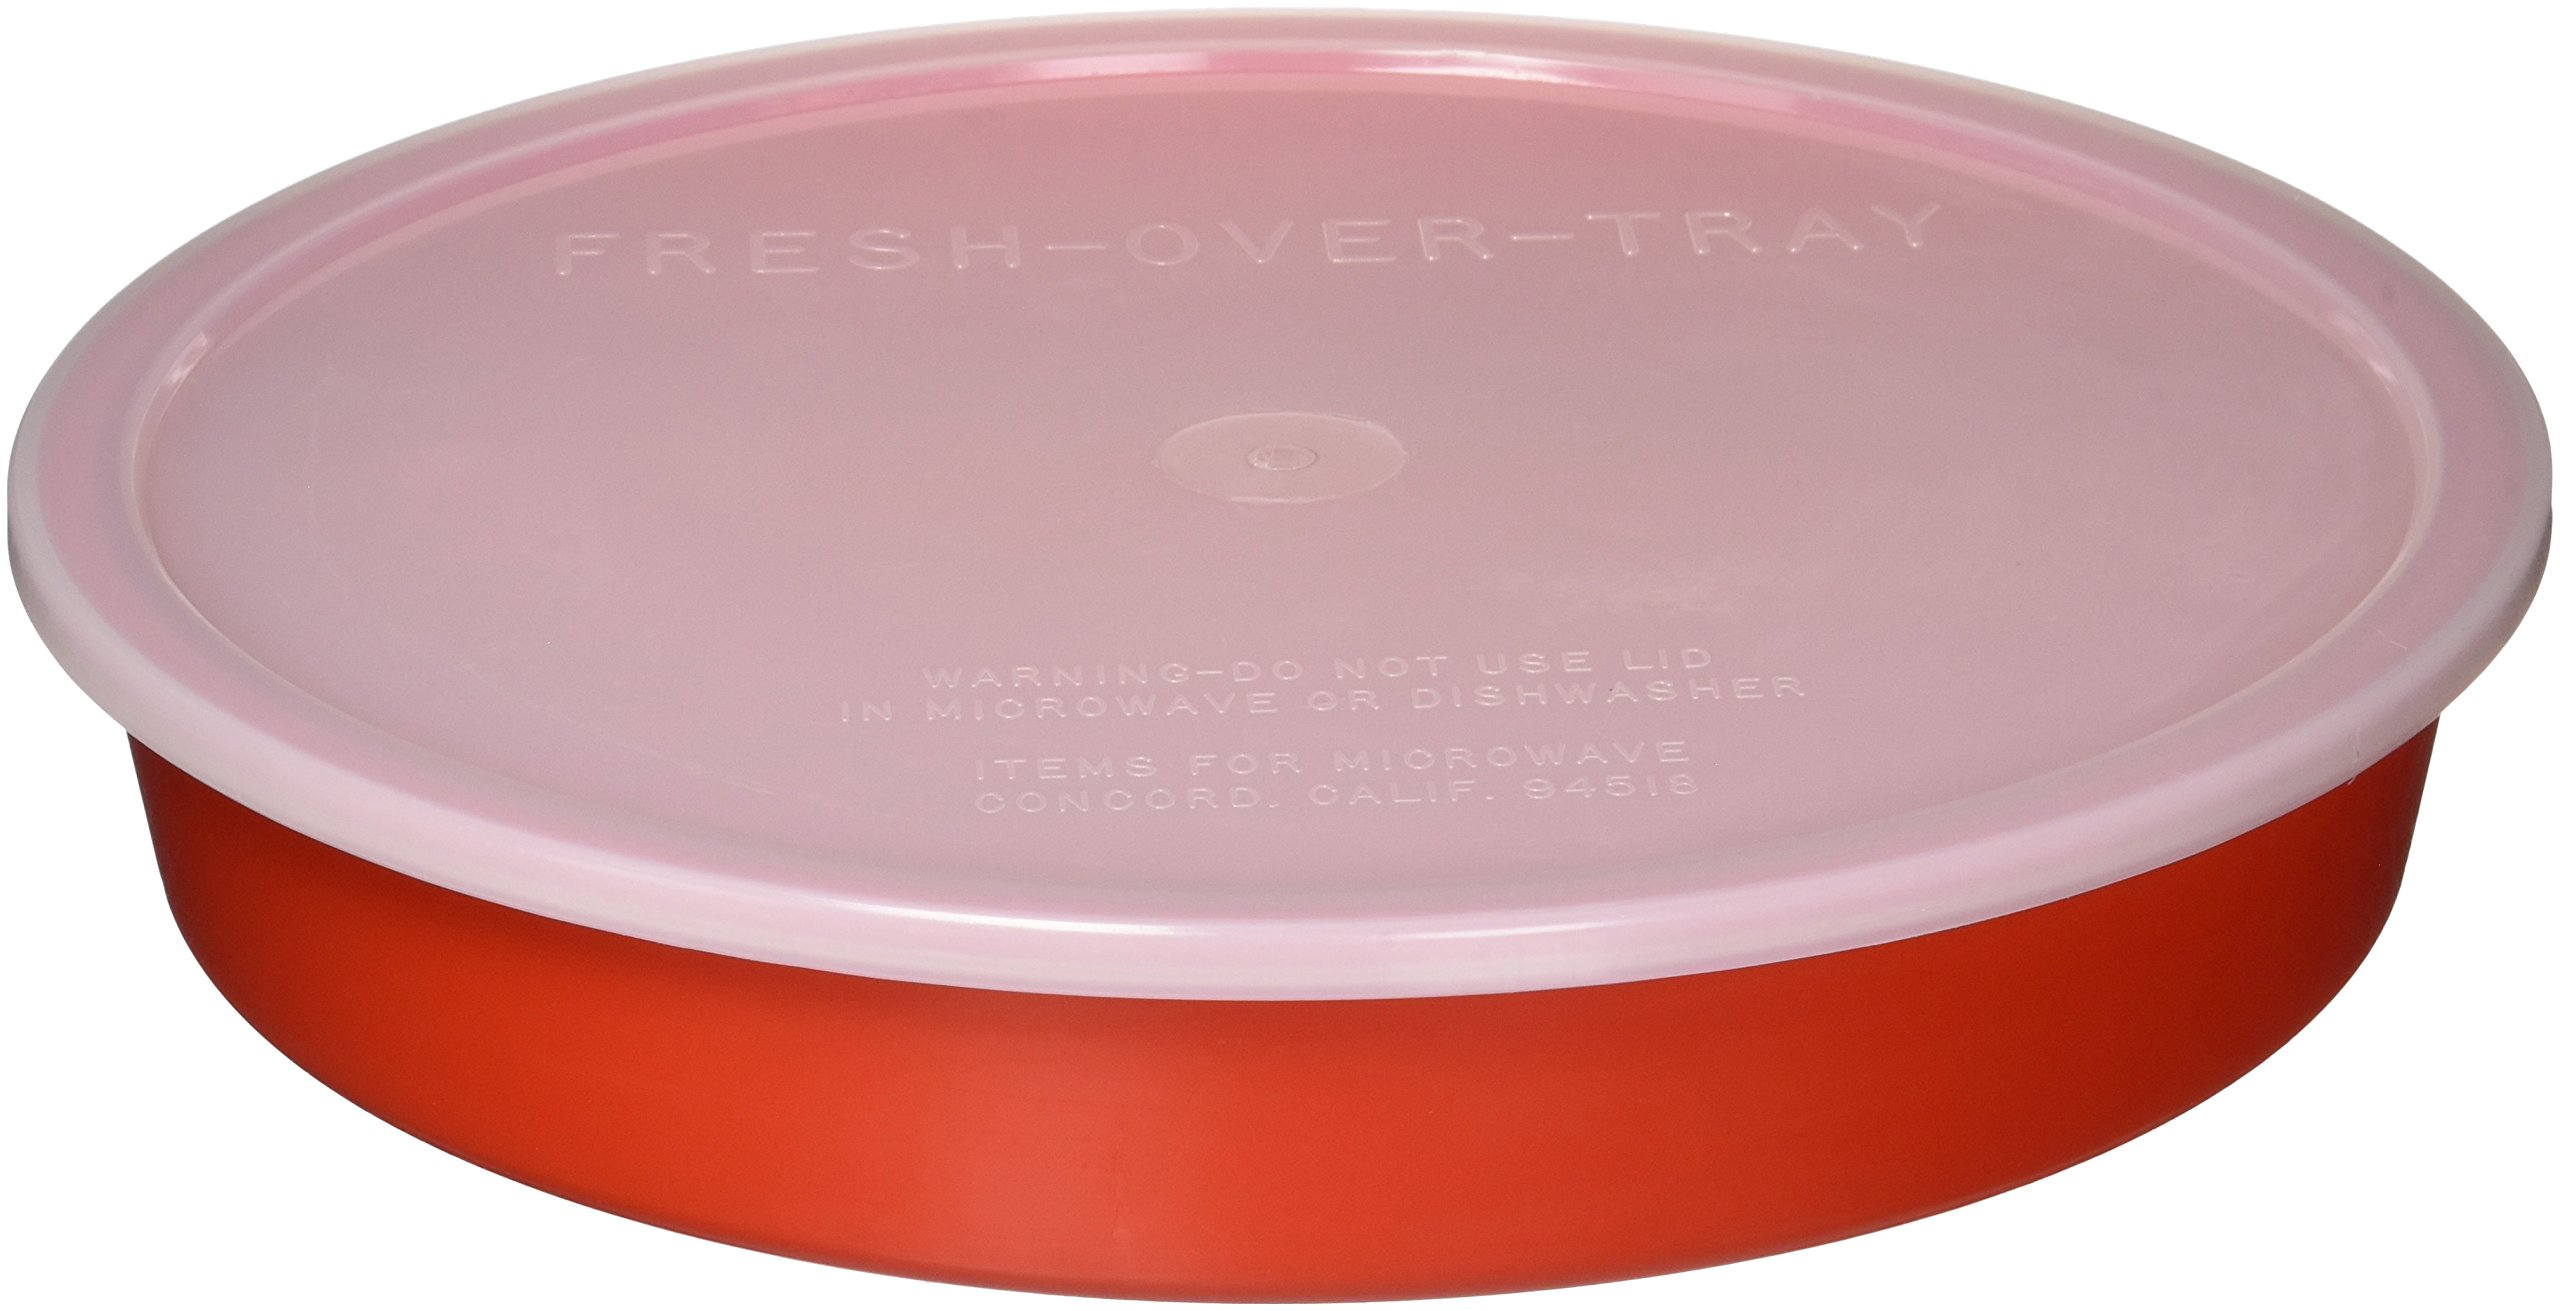 Sammons Preston High-Sided Divided Dish, Red, Break-Resistant & Lightweight Polypropylene Plastic, 10'' Diameter, 1.75'' High Vertical Sides & 7/8'' Section Dividers, Includes Lid for Travel & Storage